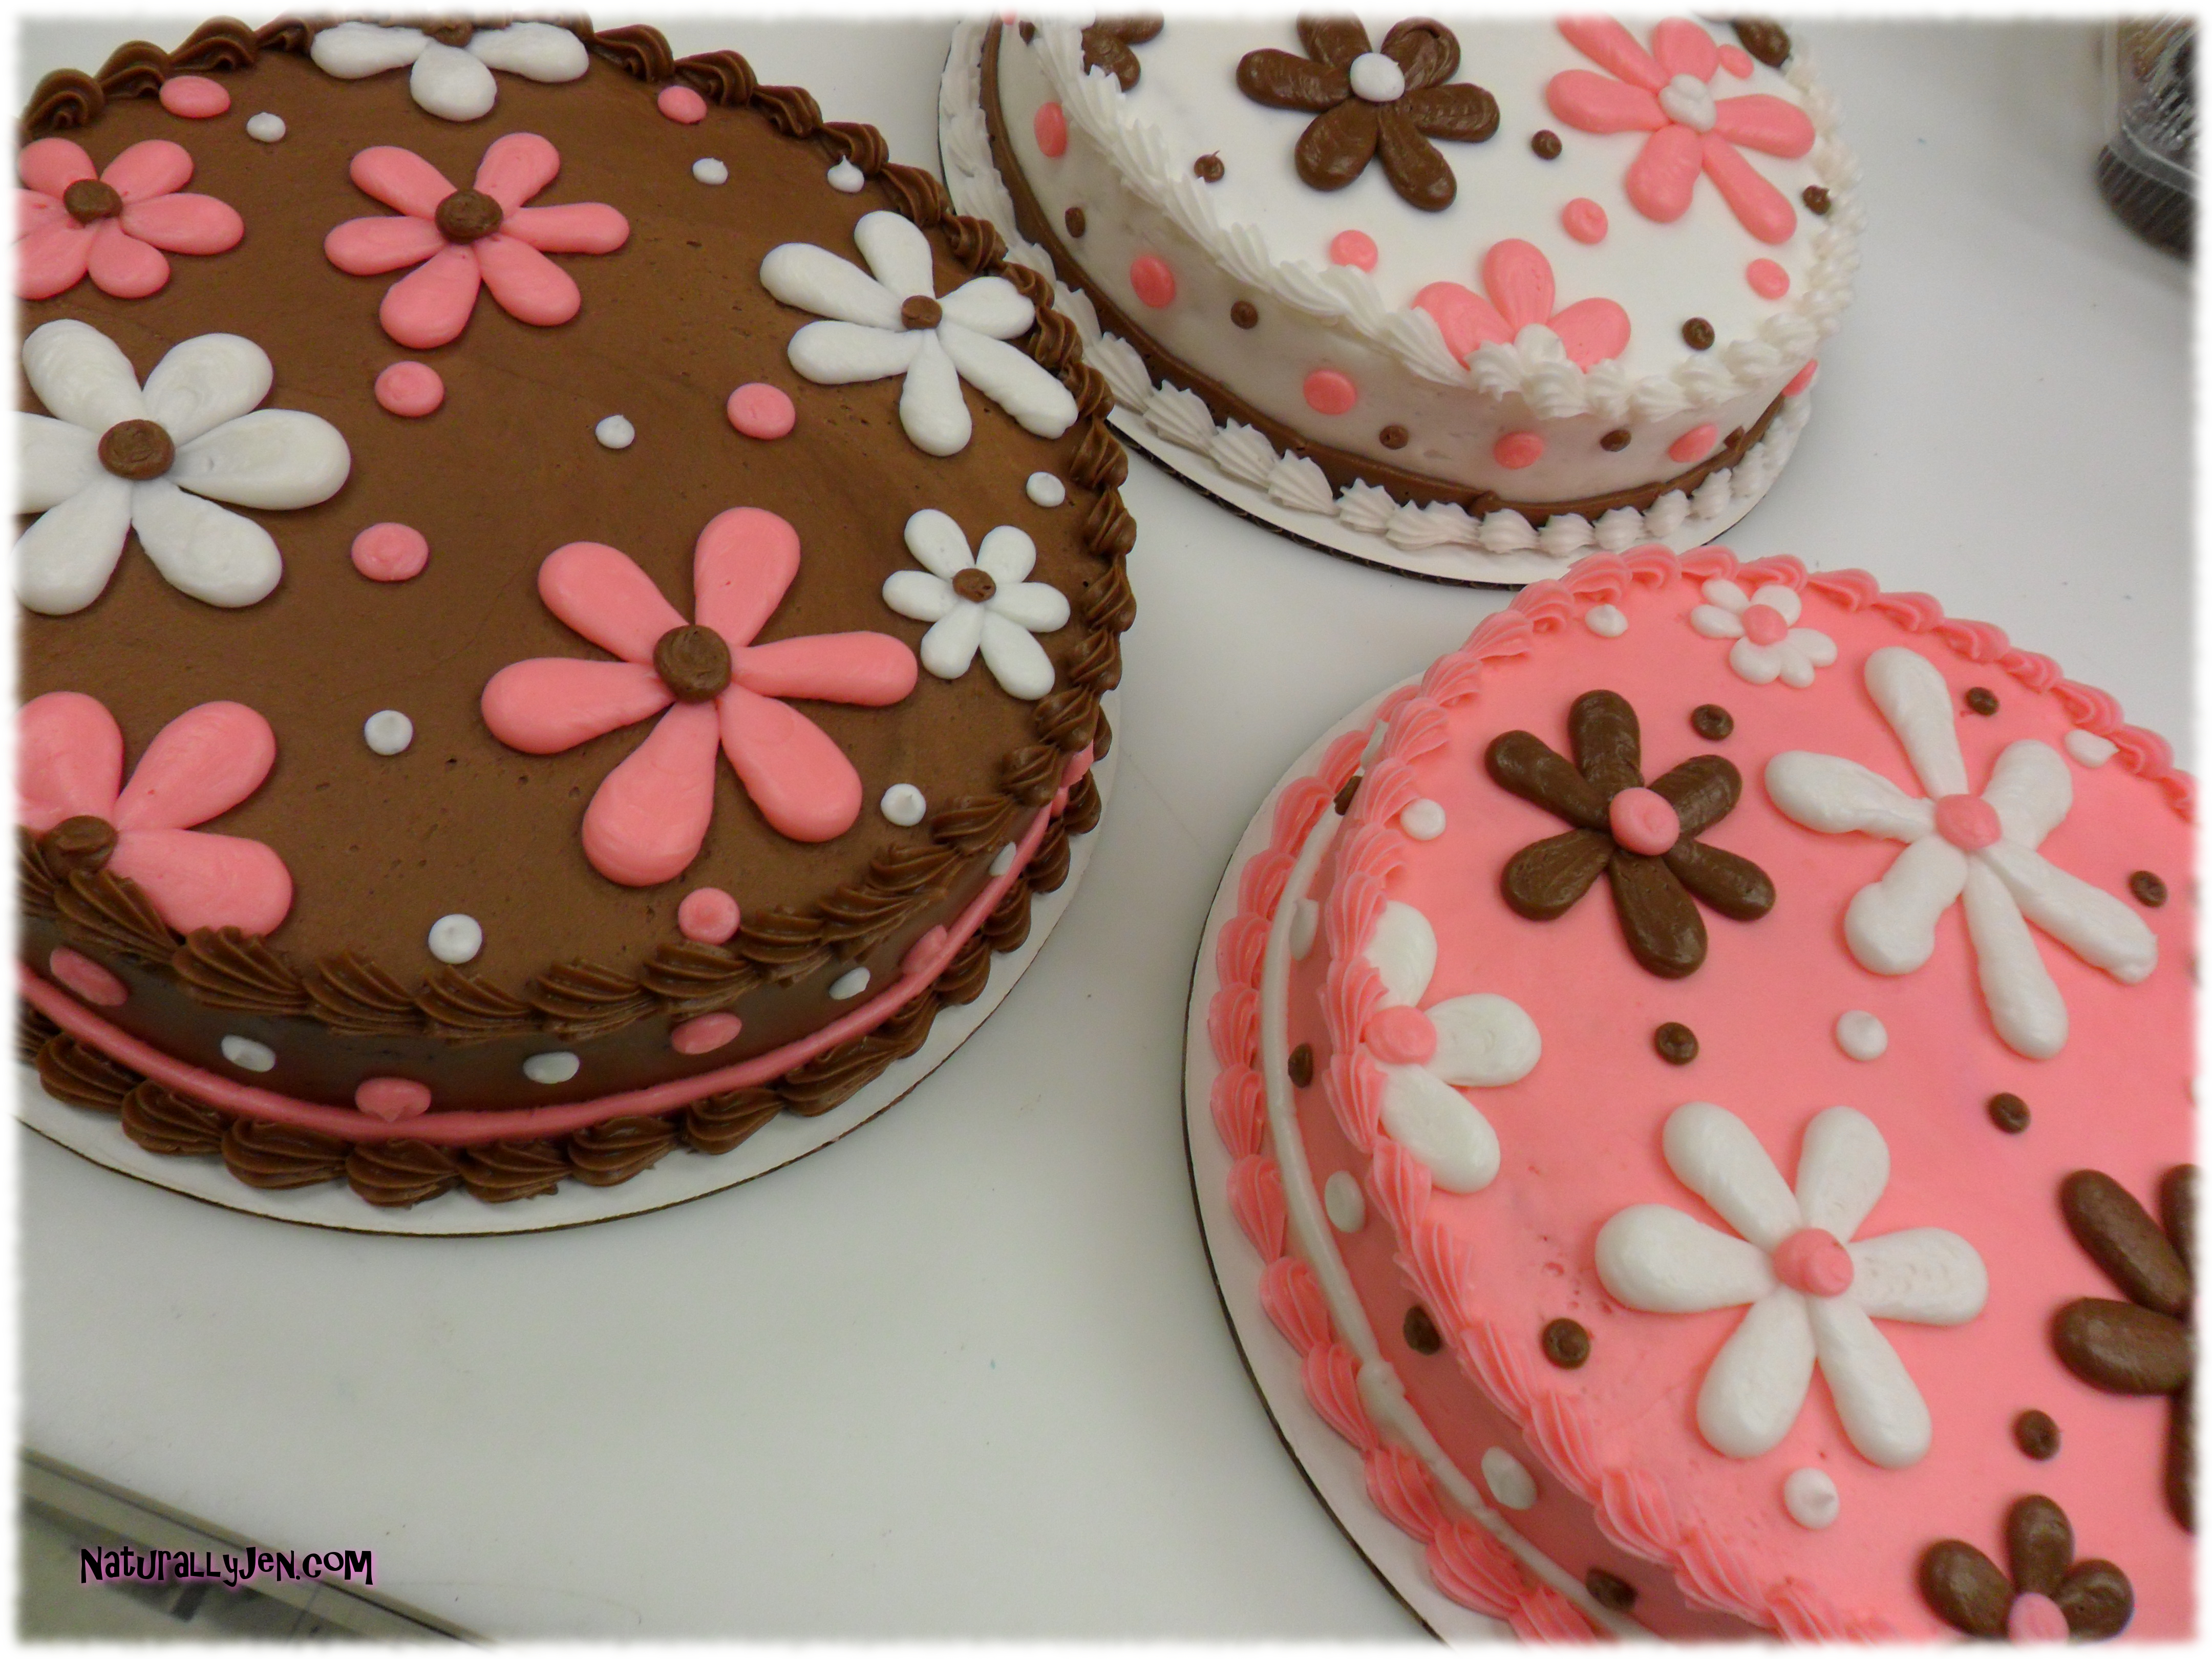 Birthday Cakes For Teenage Girls ~ Naturally jen pursuing the balanced life: cakes